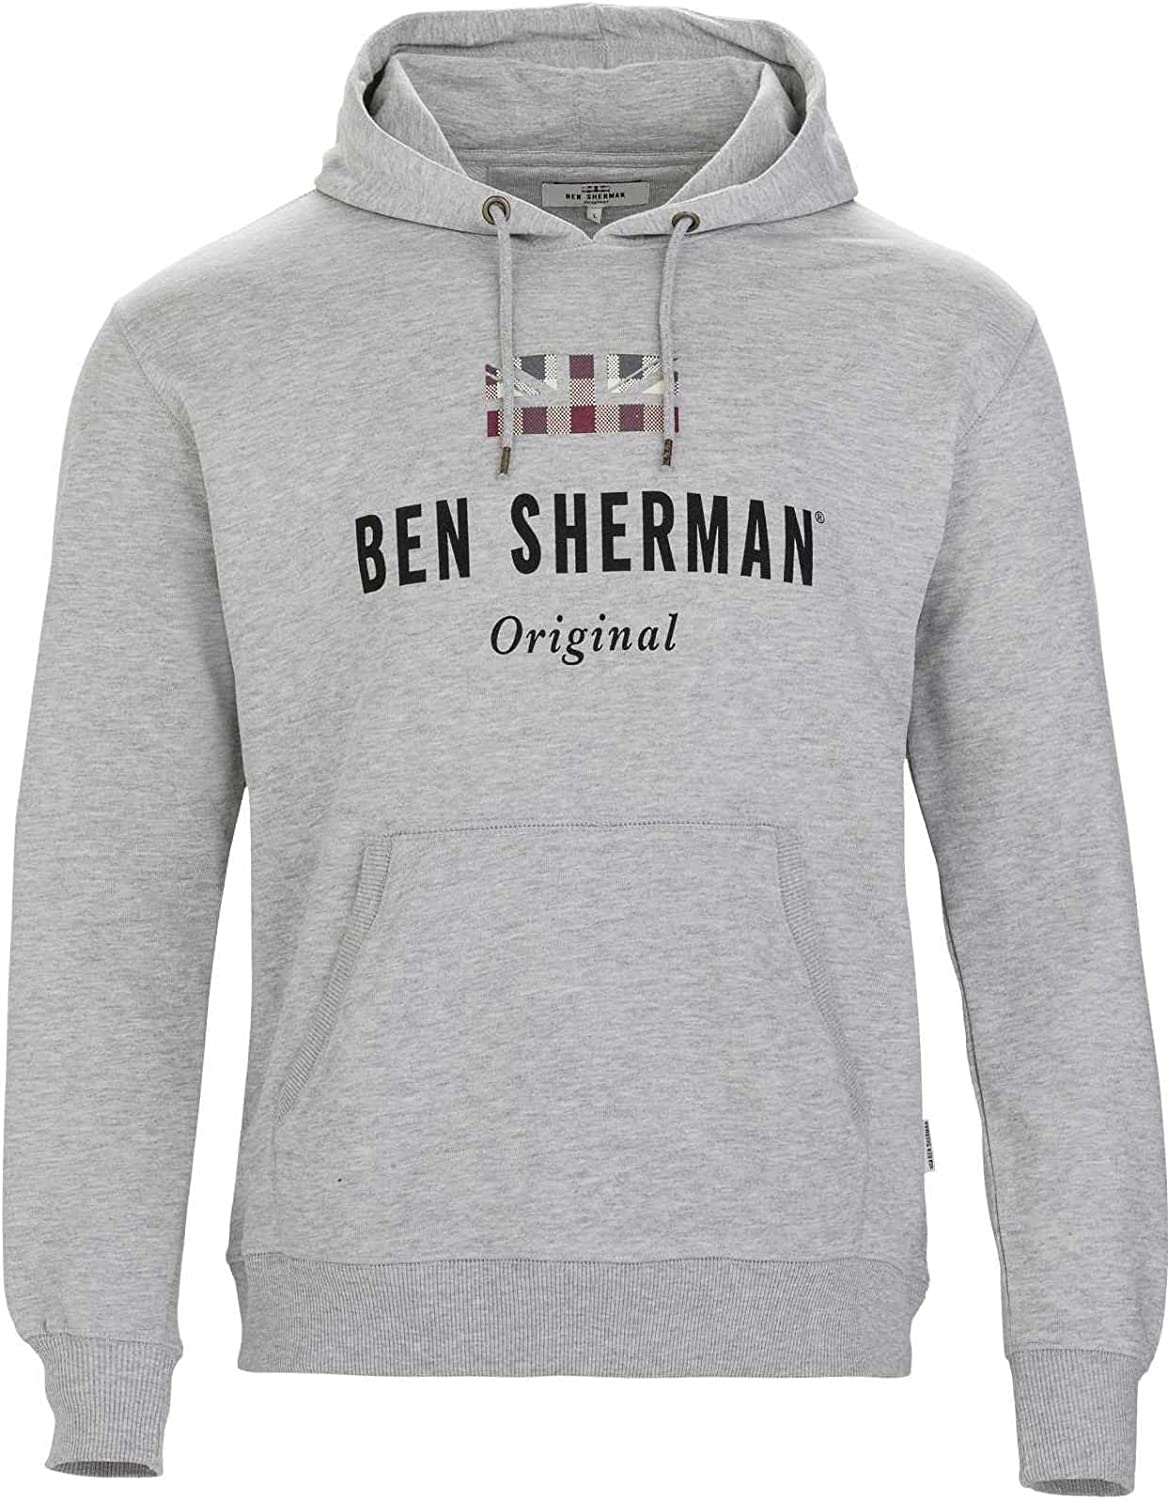 Ben Sherman Men's Original Hoodie Jumper 0622019